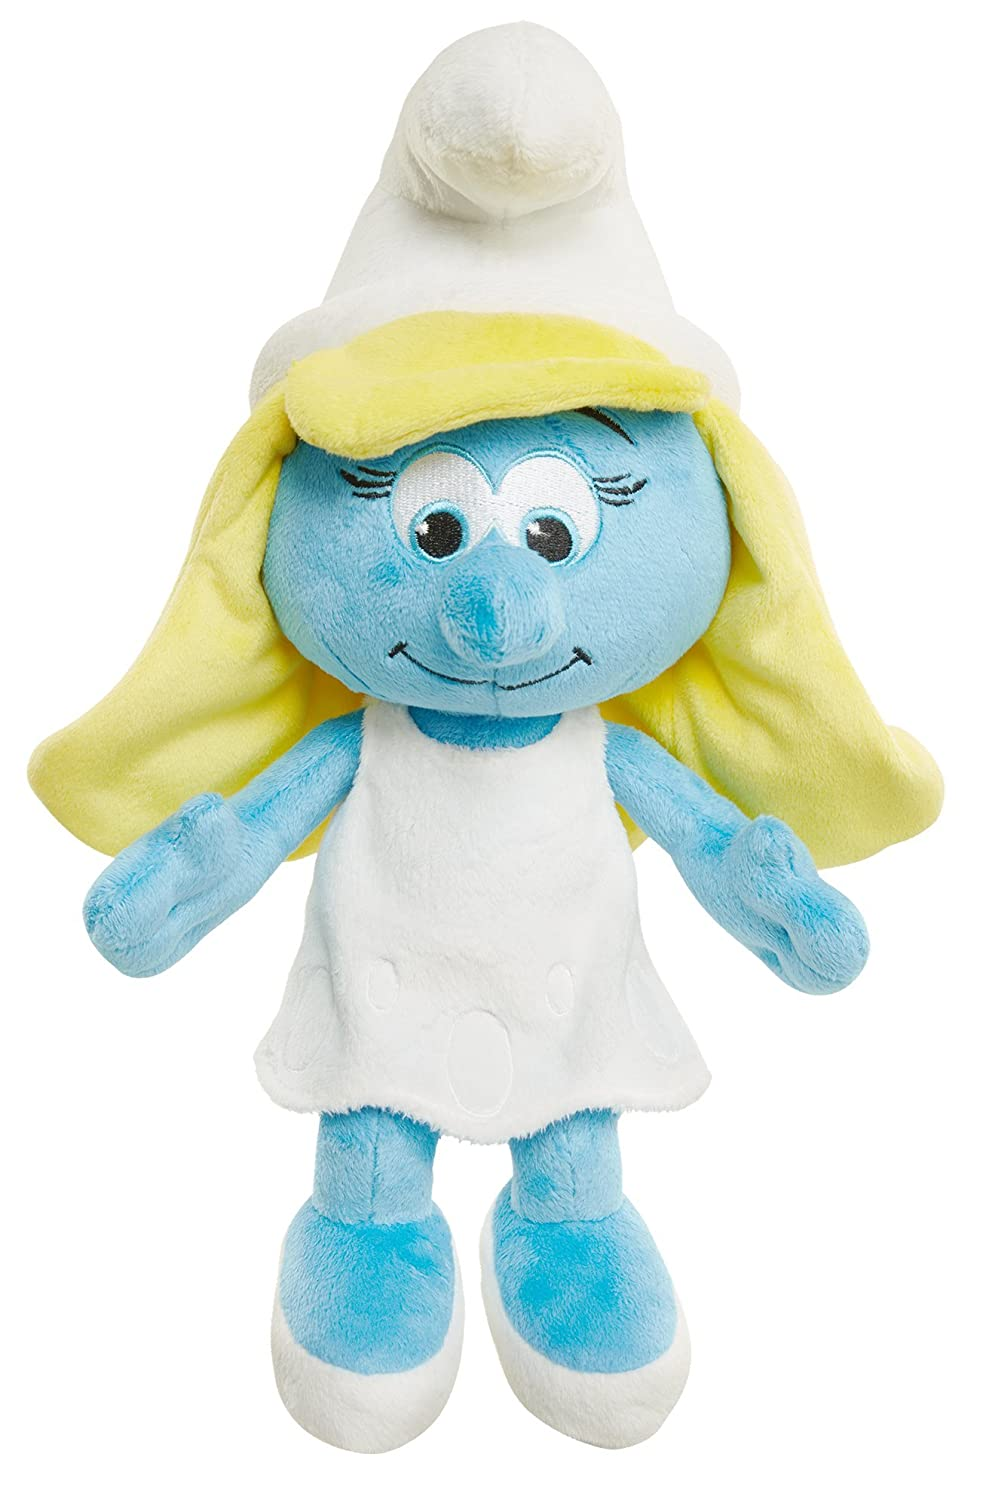 Smurfs The Lost Village Smurfette Talking Feature Plush